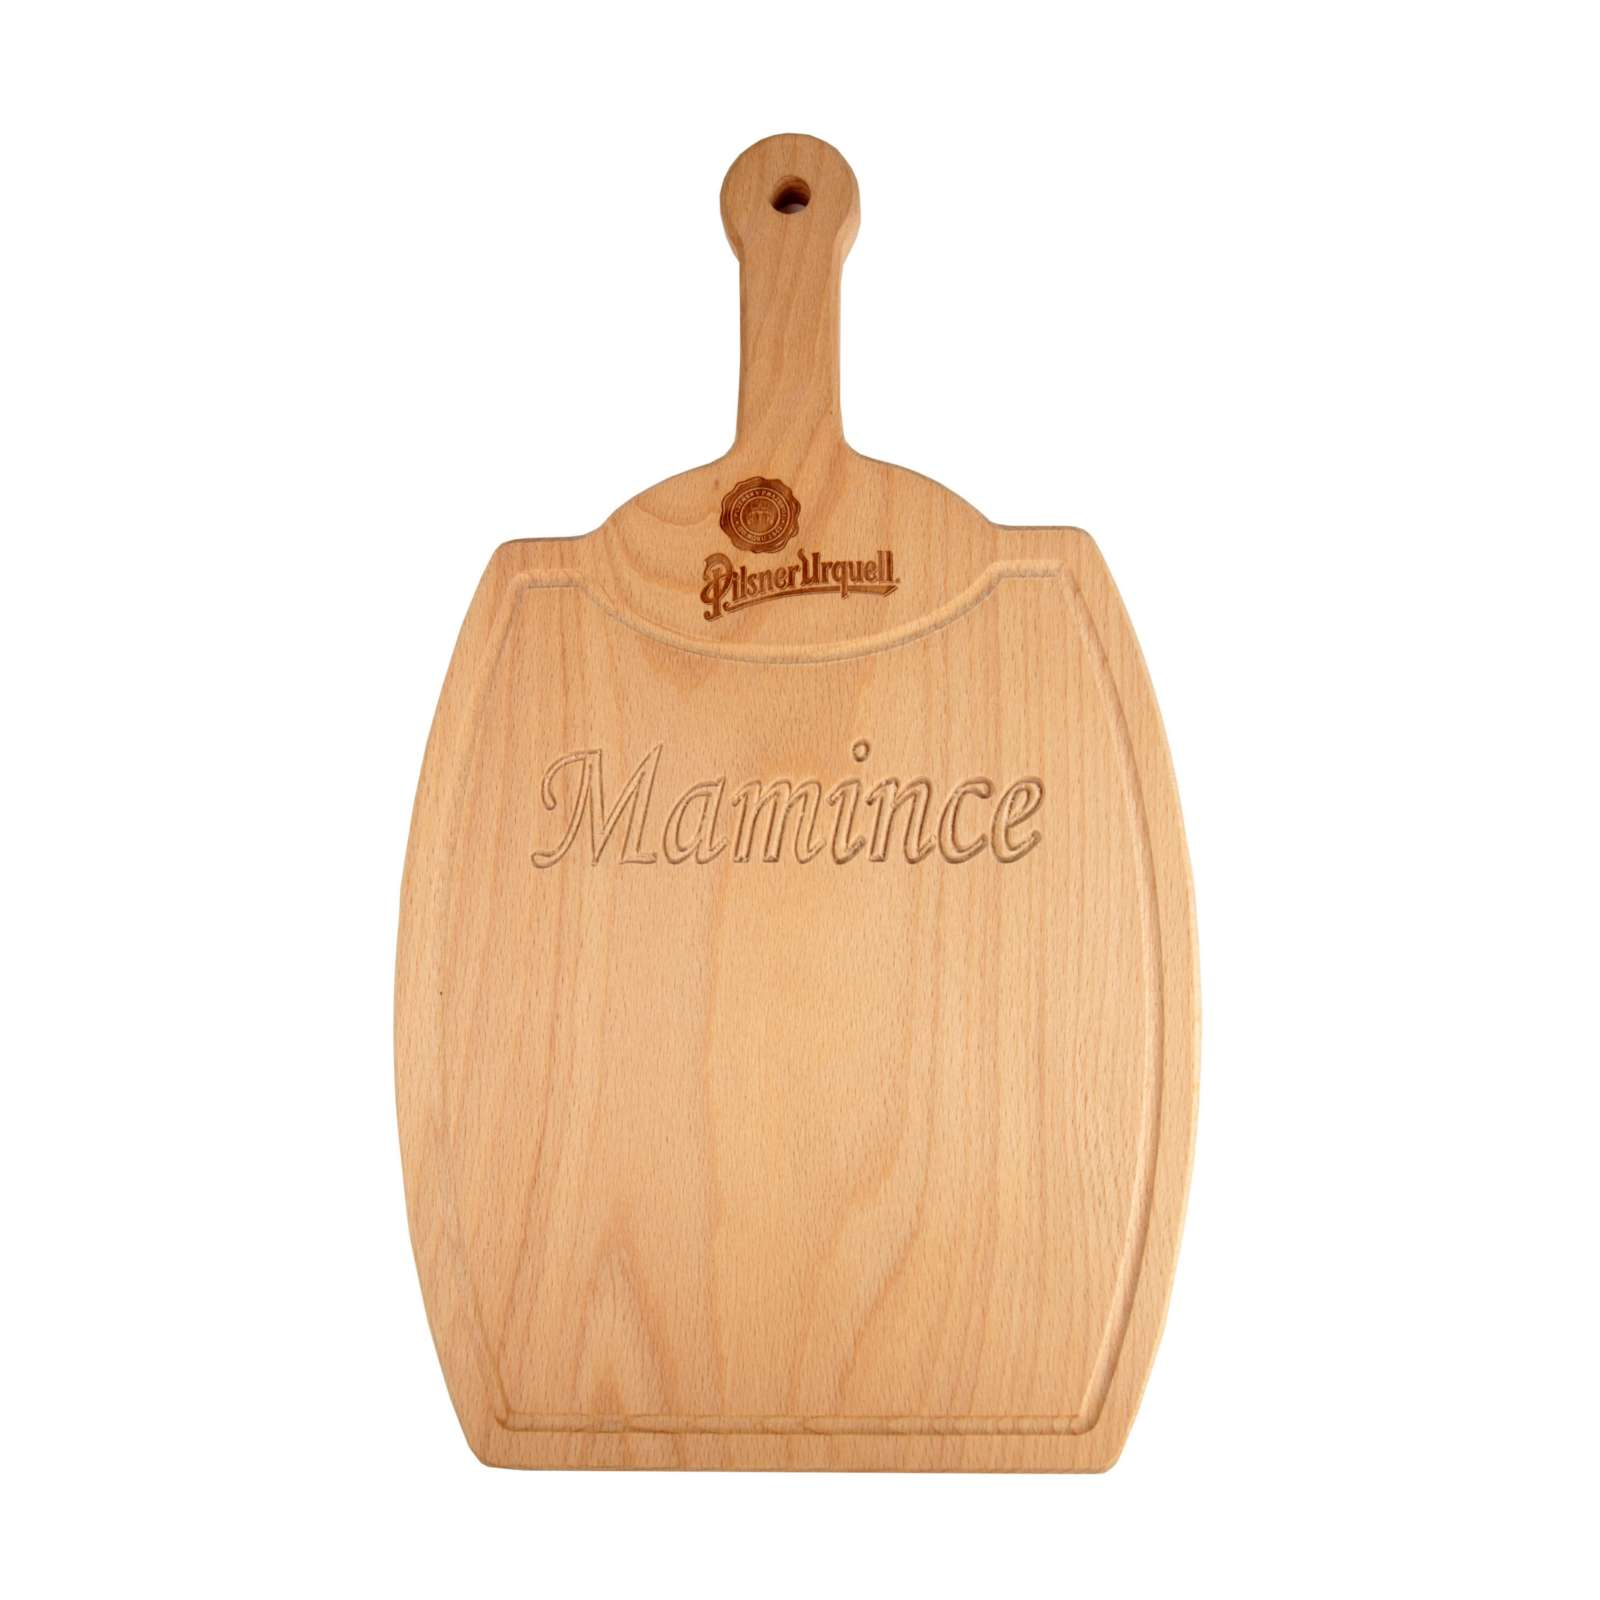 Pilsner Urquell wooden chopping board - barrel with inscription